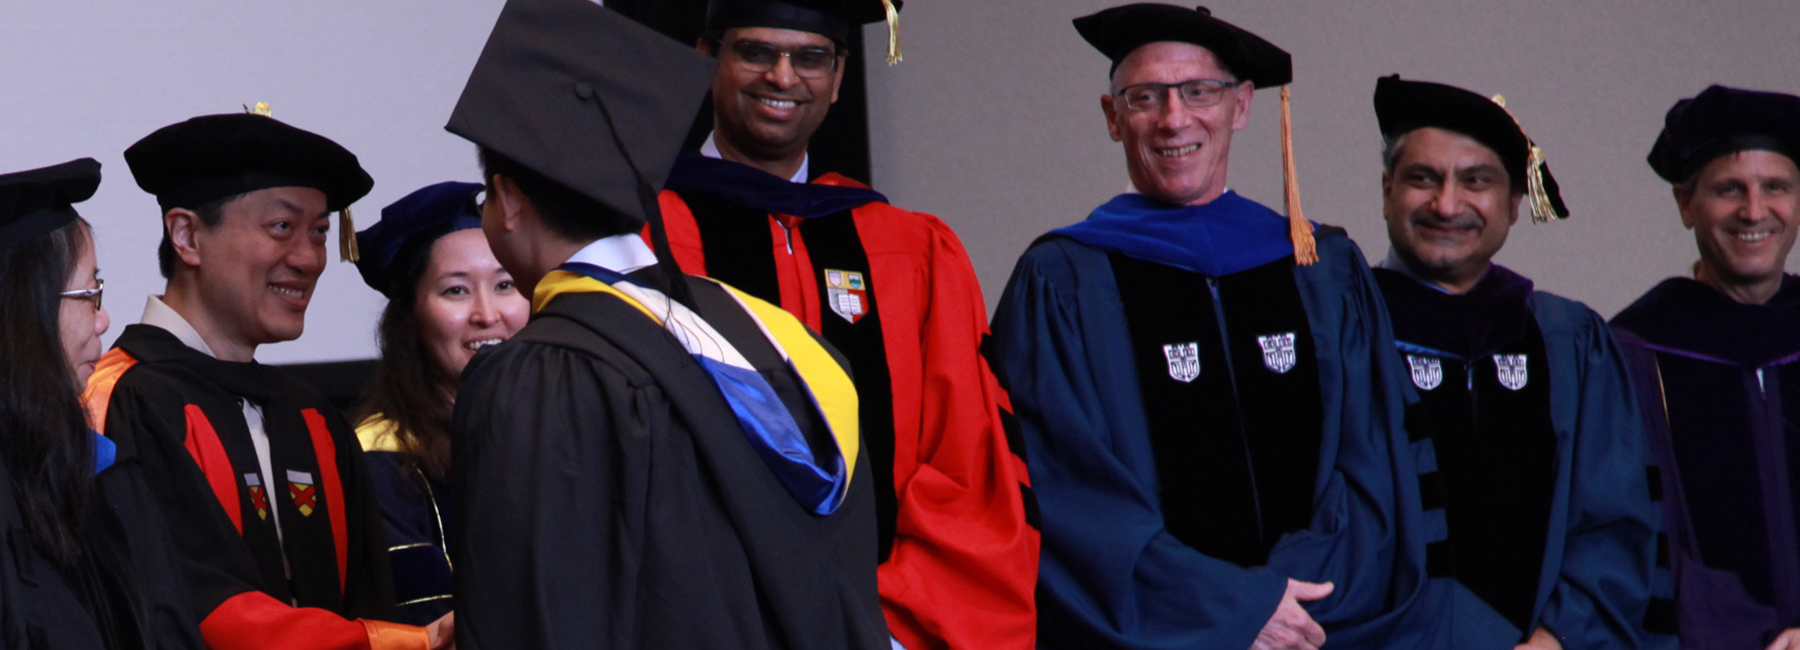 Faculty Congrats-2019 Graduation